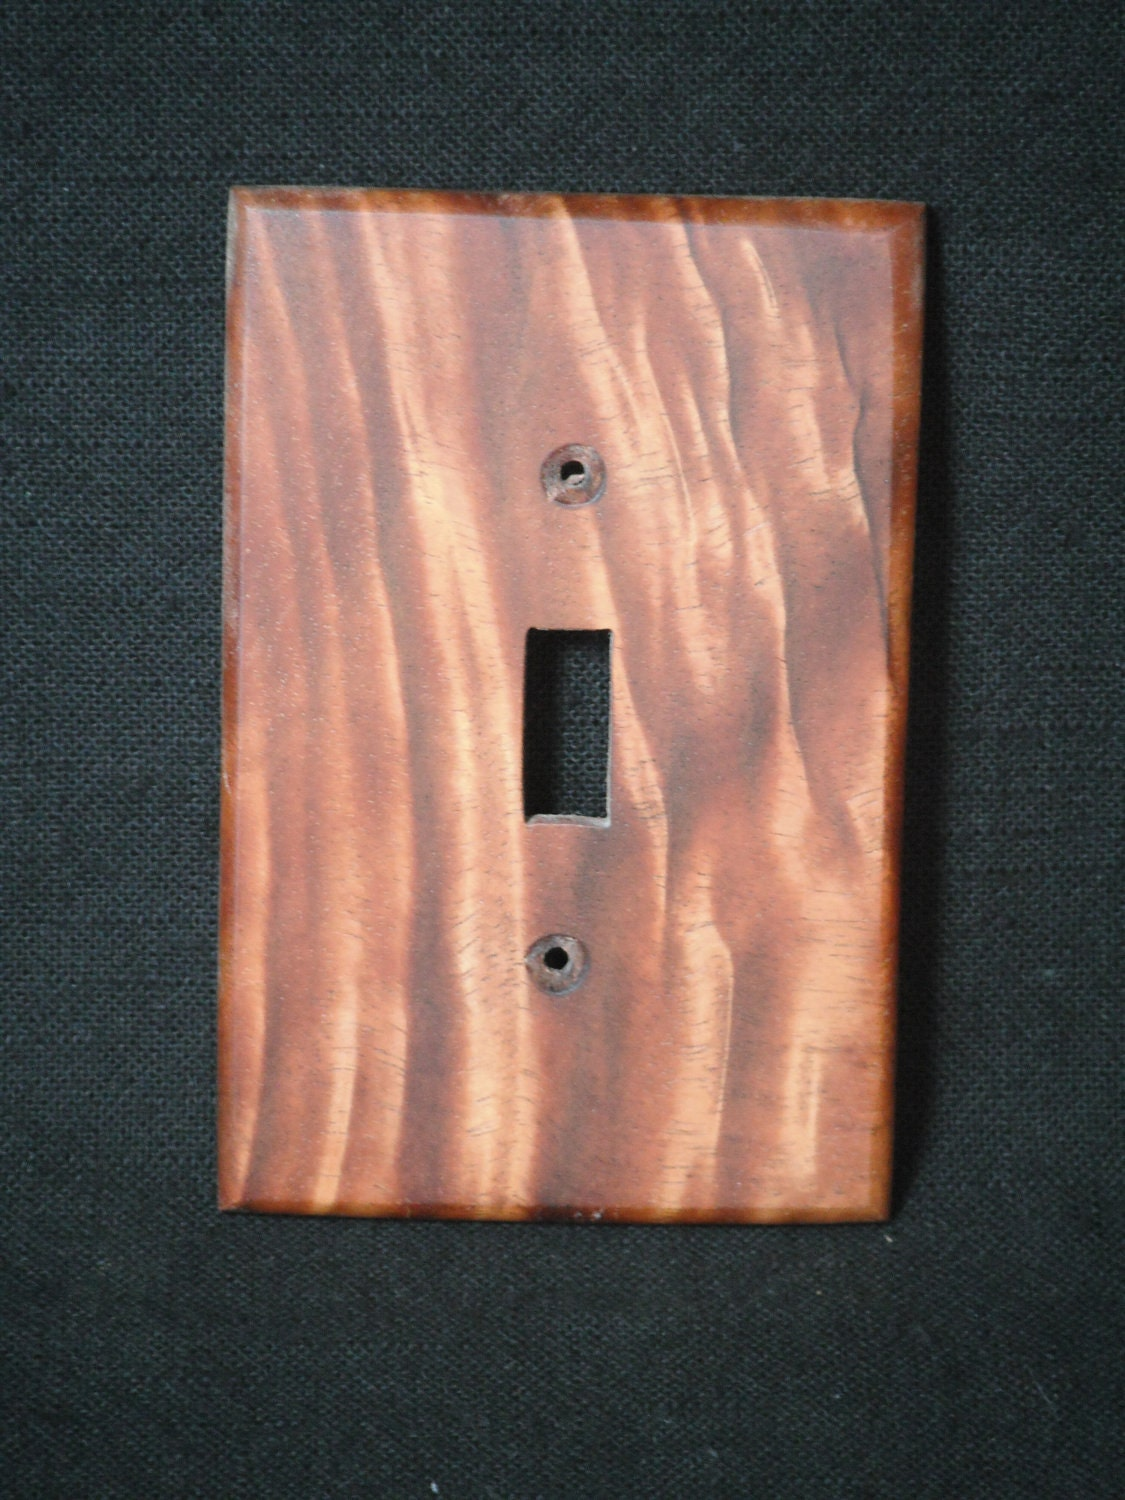 Handmade Hawaiian Koa Wood Light Switch Cover Plate